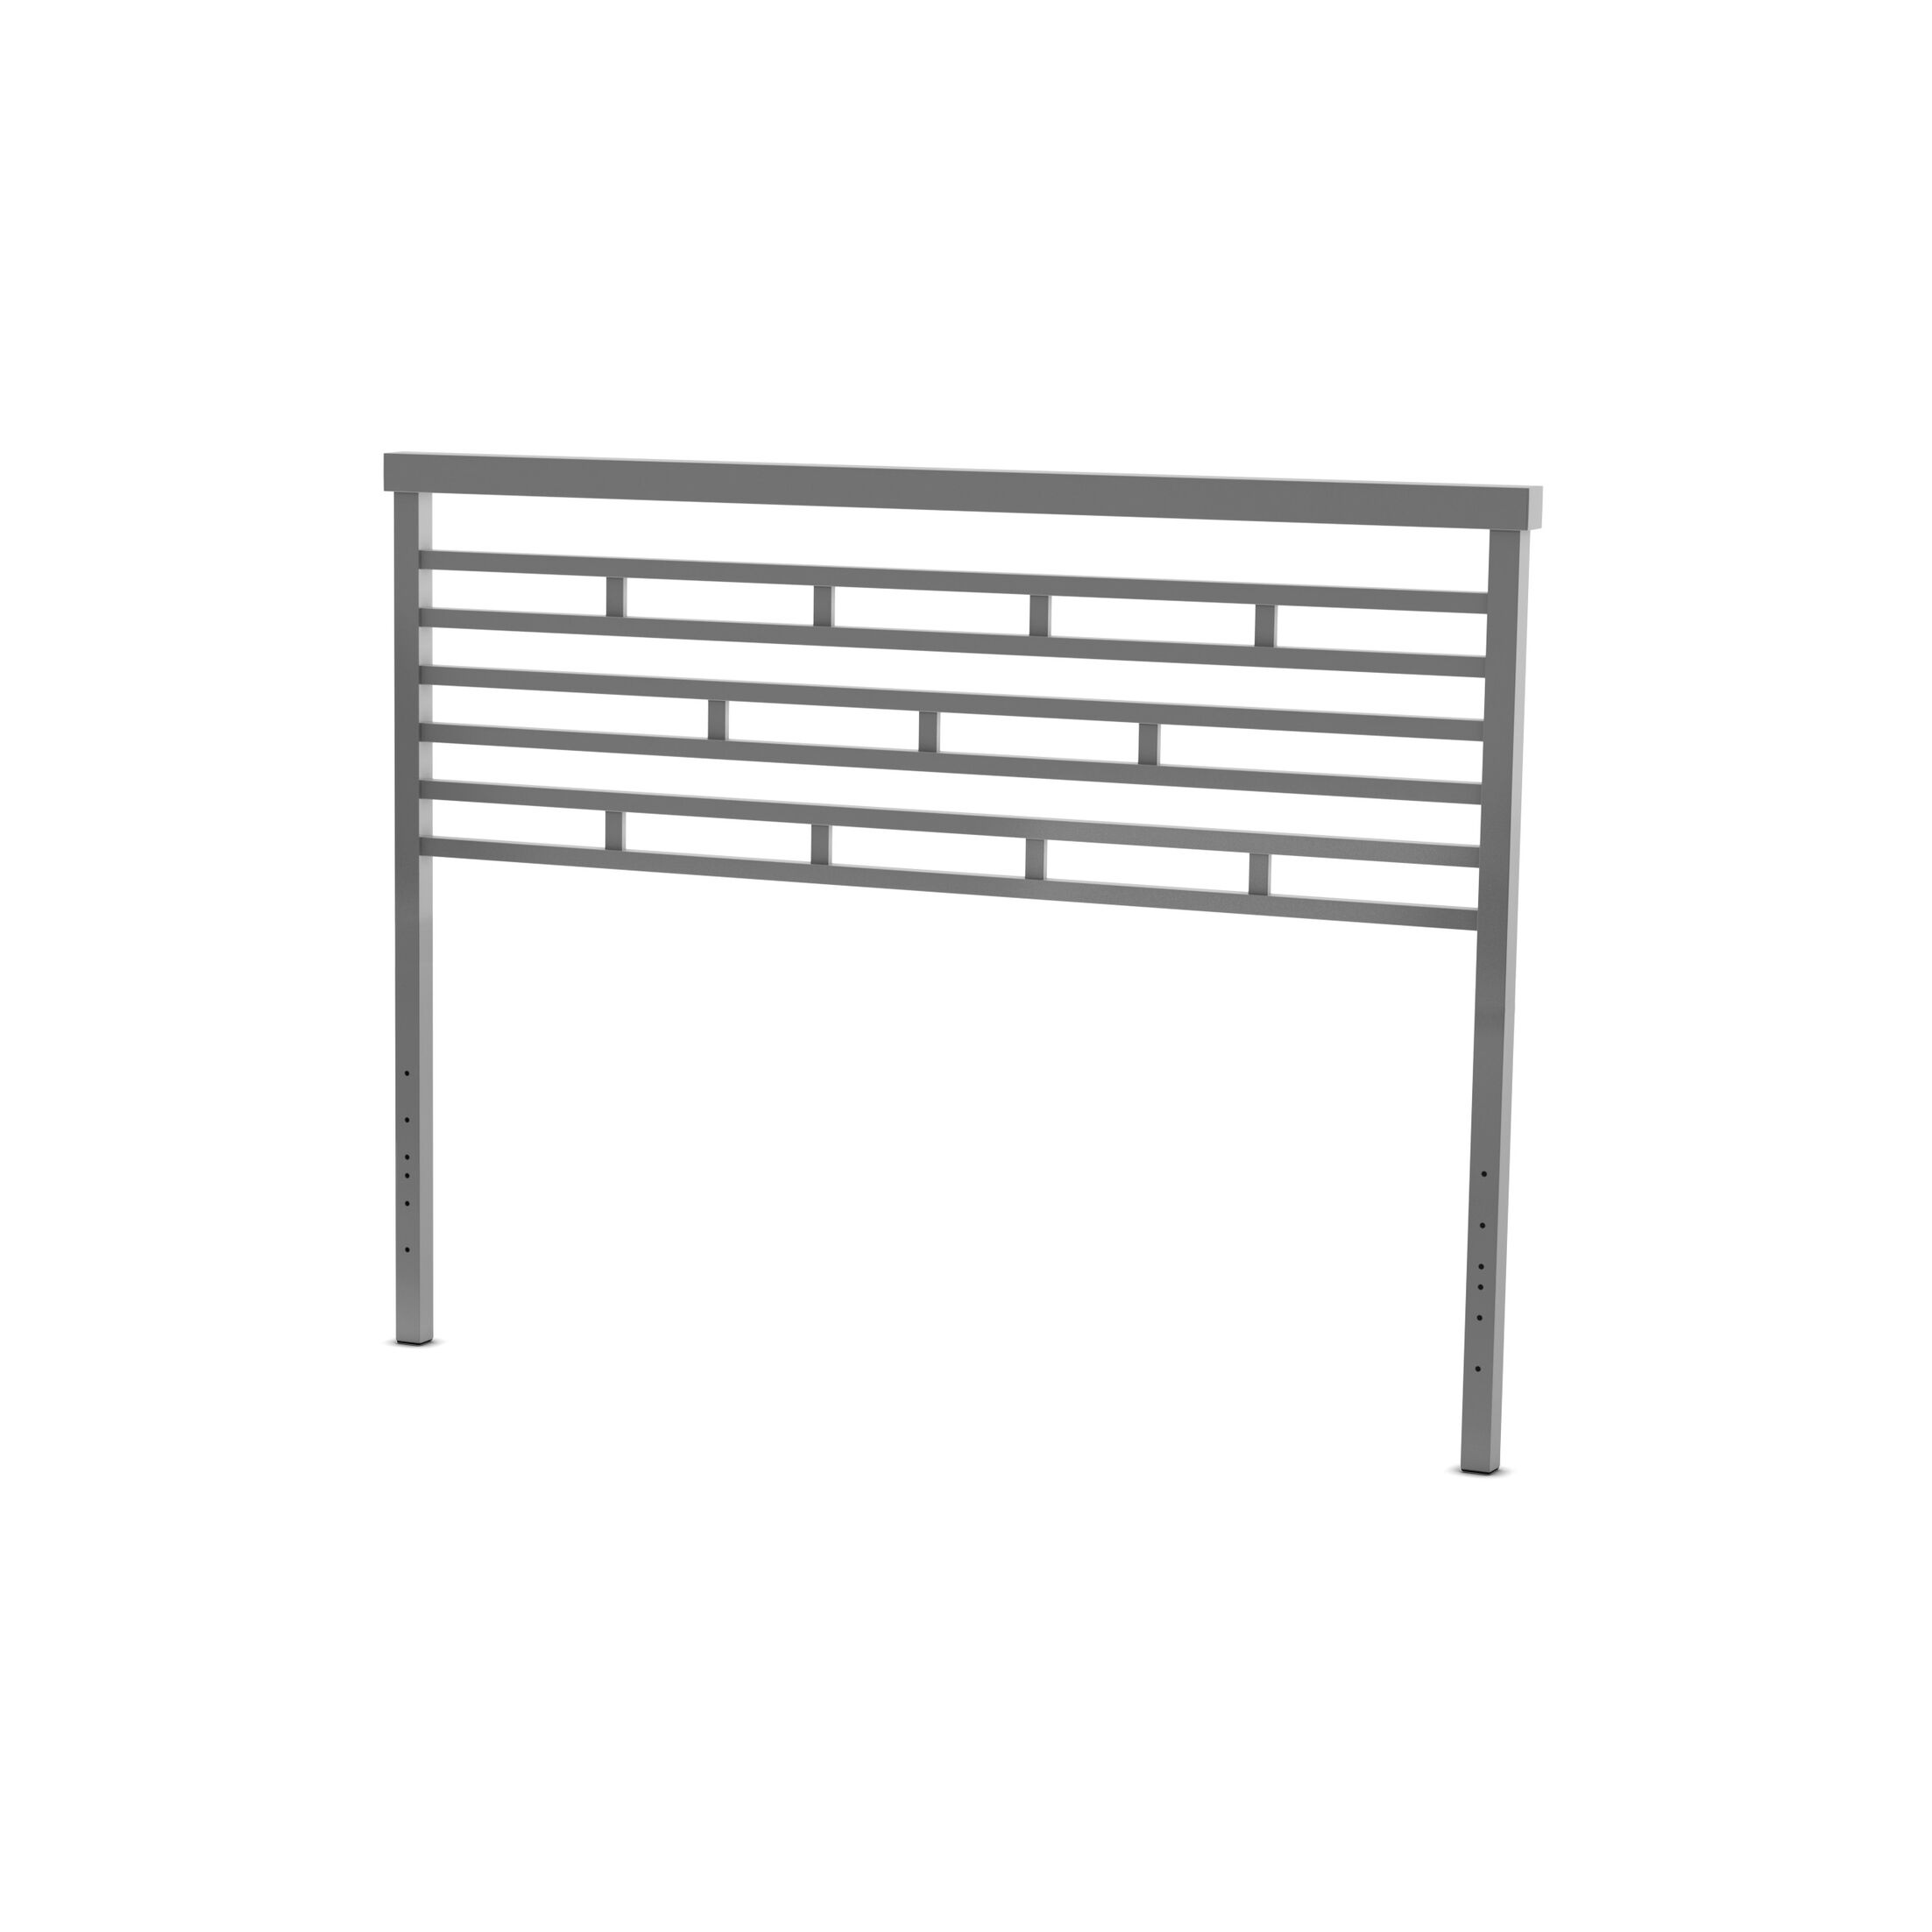 Fobbs Open-Frame Headboard Size: Queen, Color: Glossy Grey